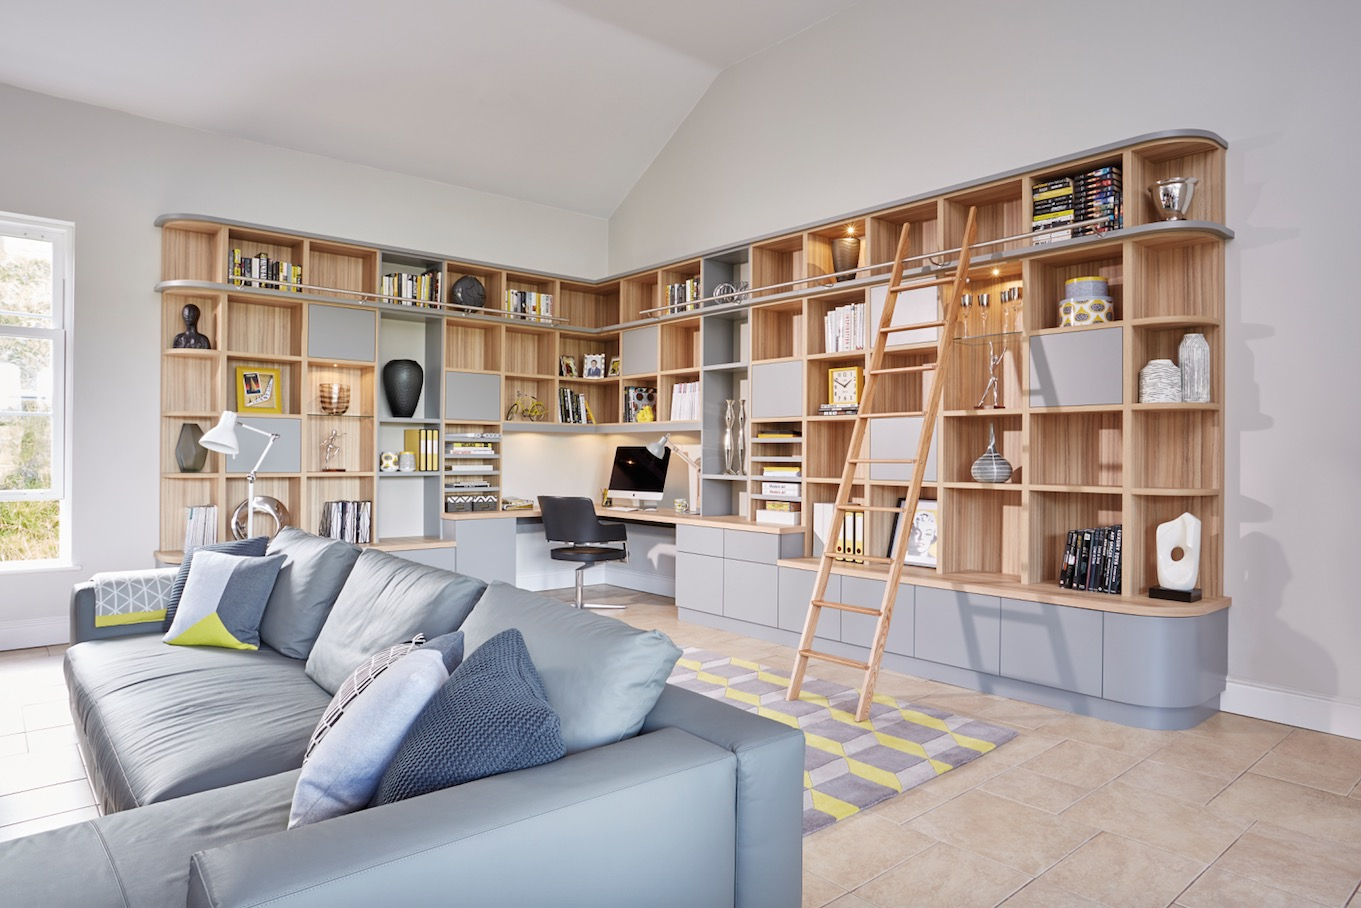 6 space saving solutions and storage ideas for your living for Home space saving ideas